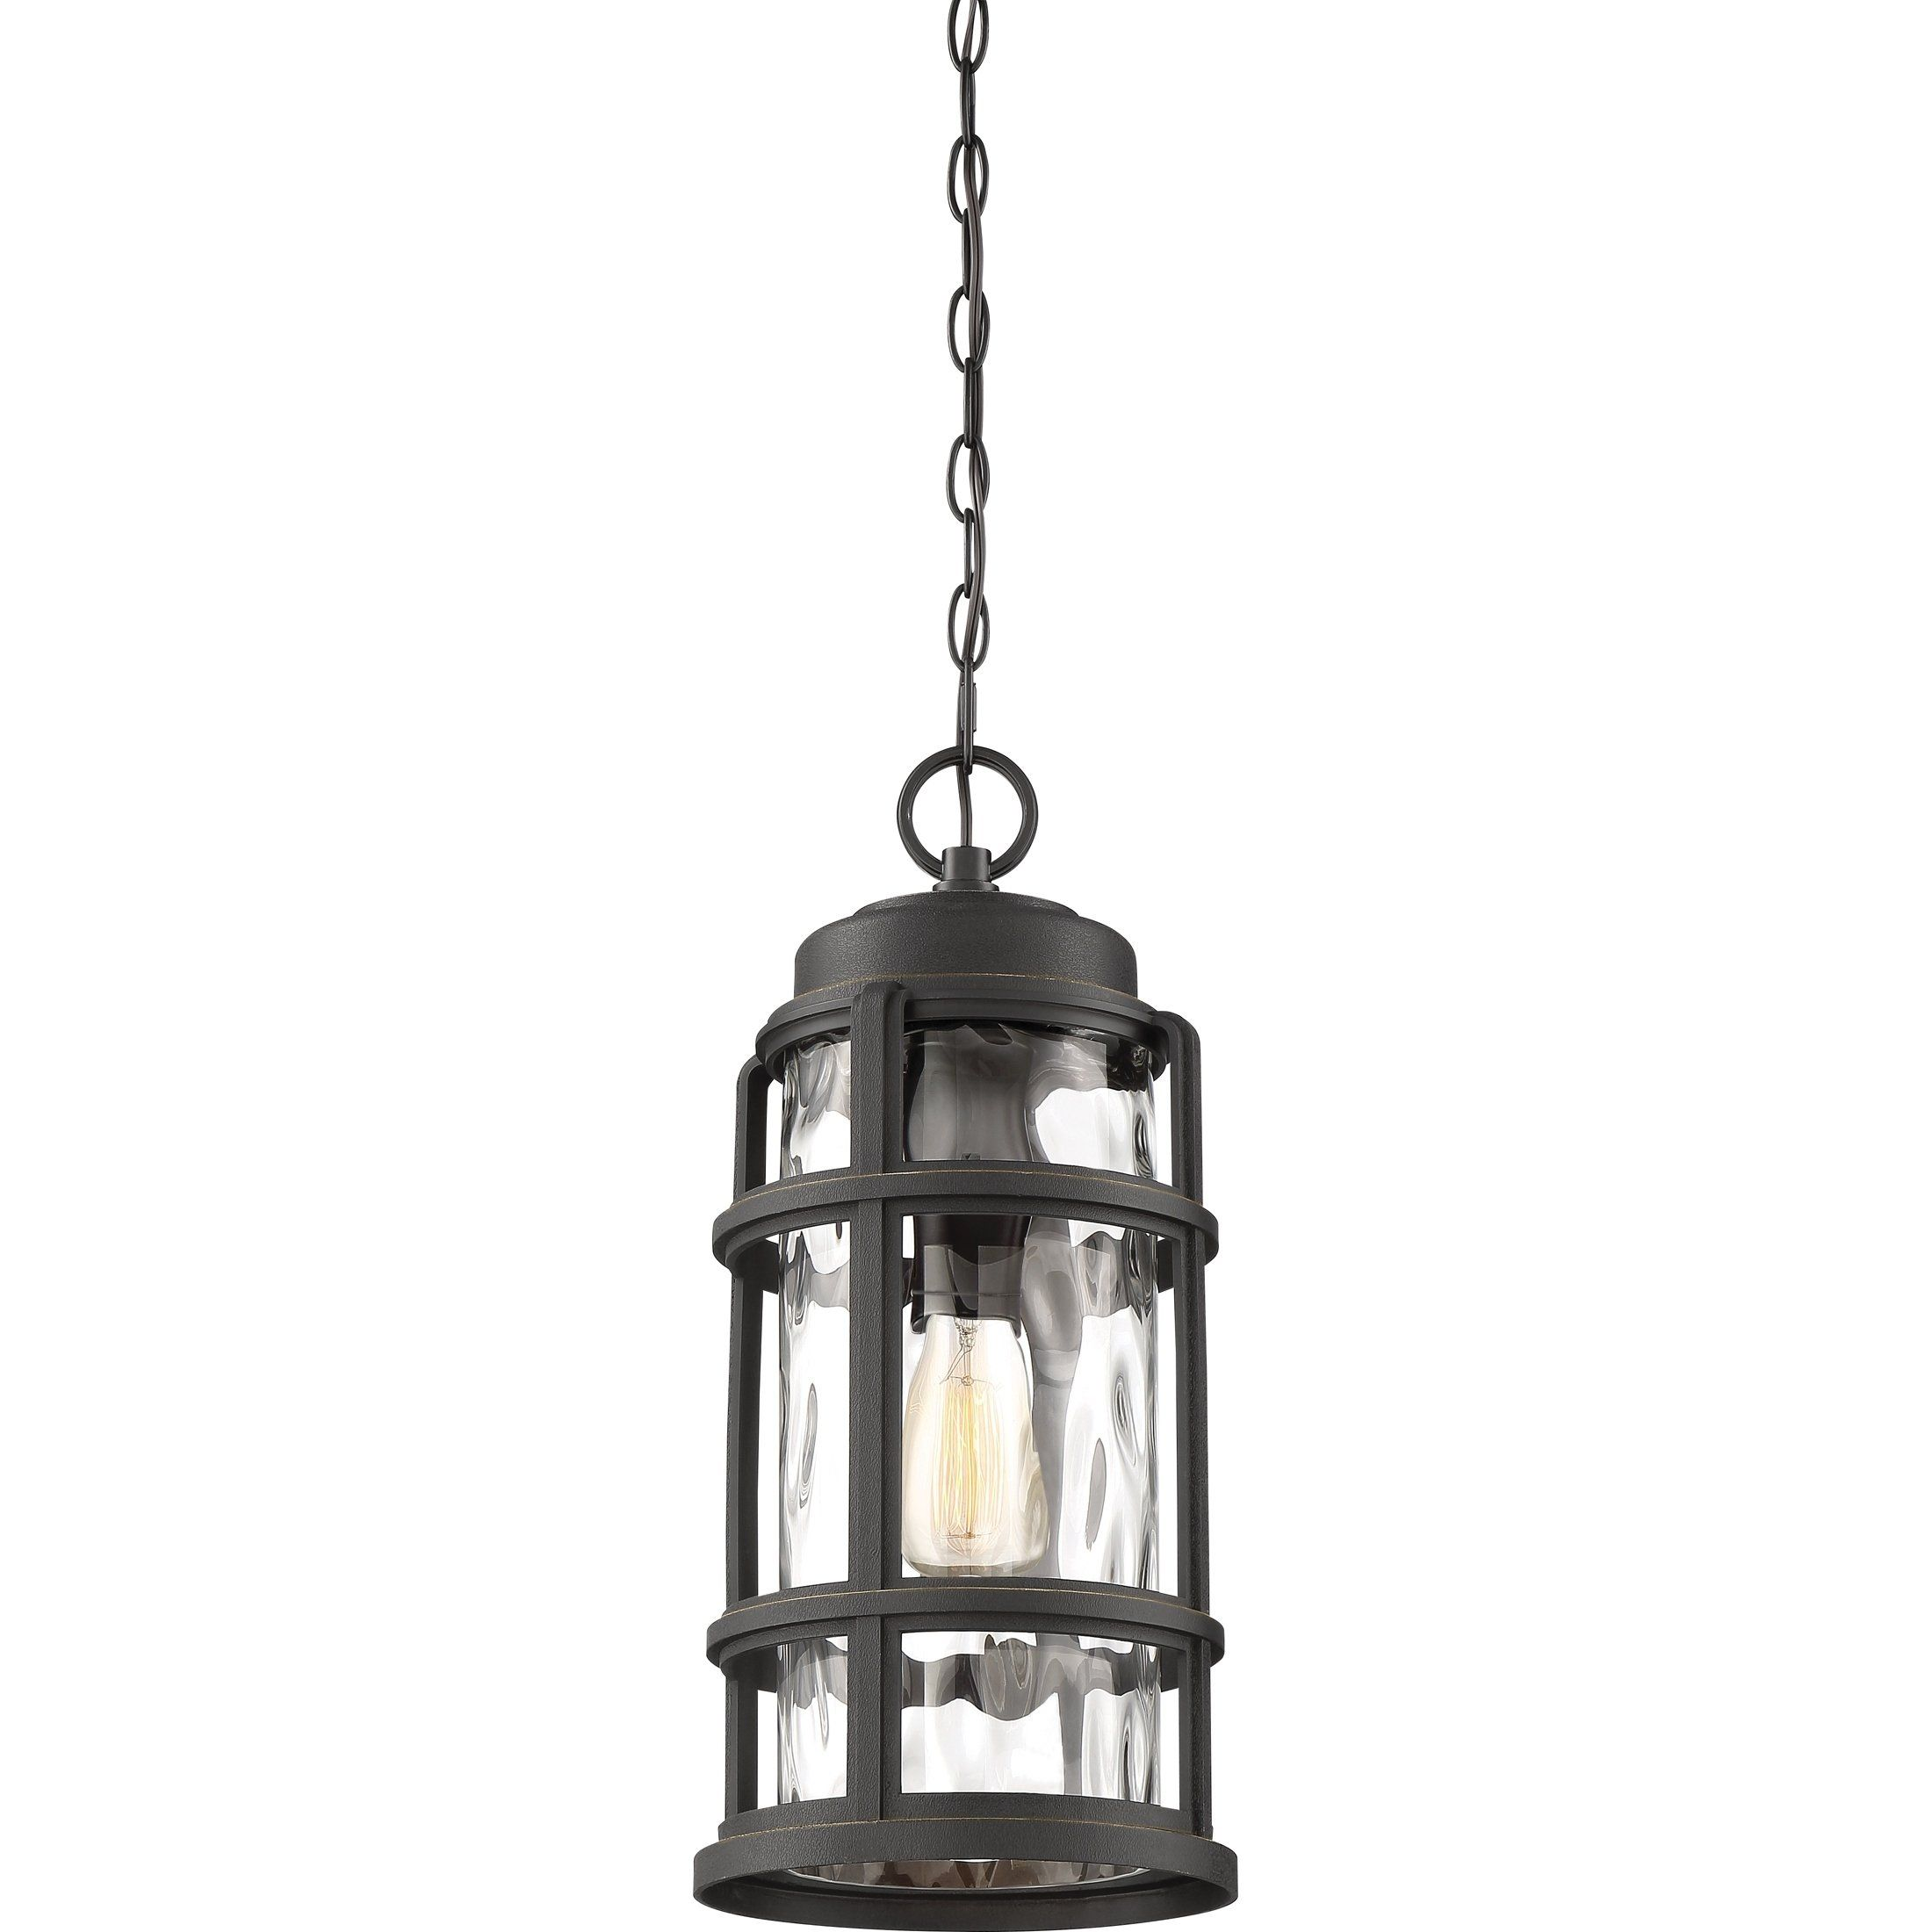 Quoizel Desoto Palladian Bronze Hanging Lantern Black Plastic Outdoor Hanging Lights Outdoor Hanging Lanterns Outdoor Chandelier